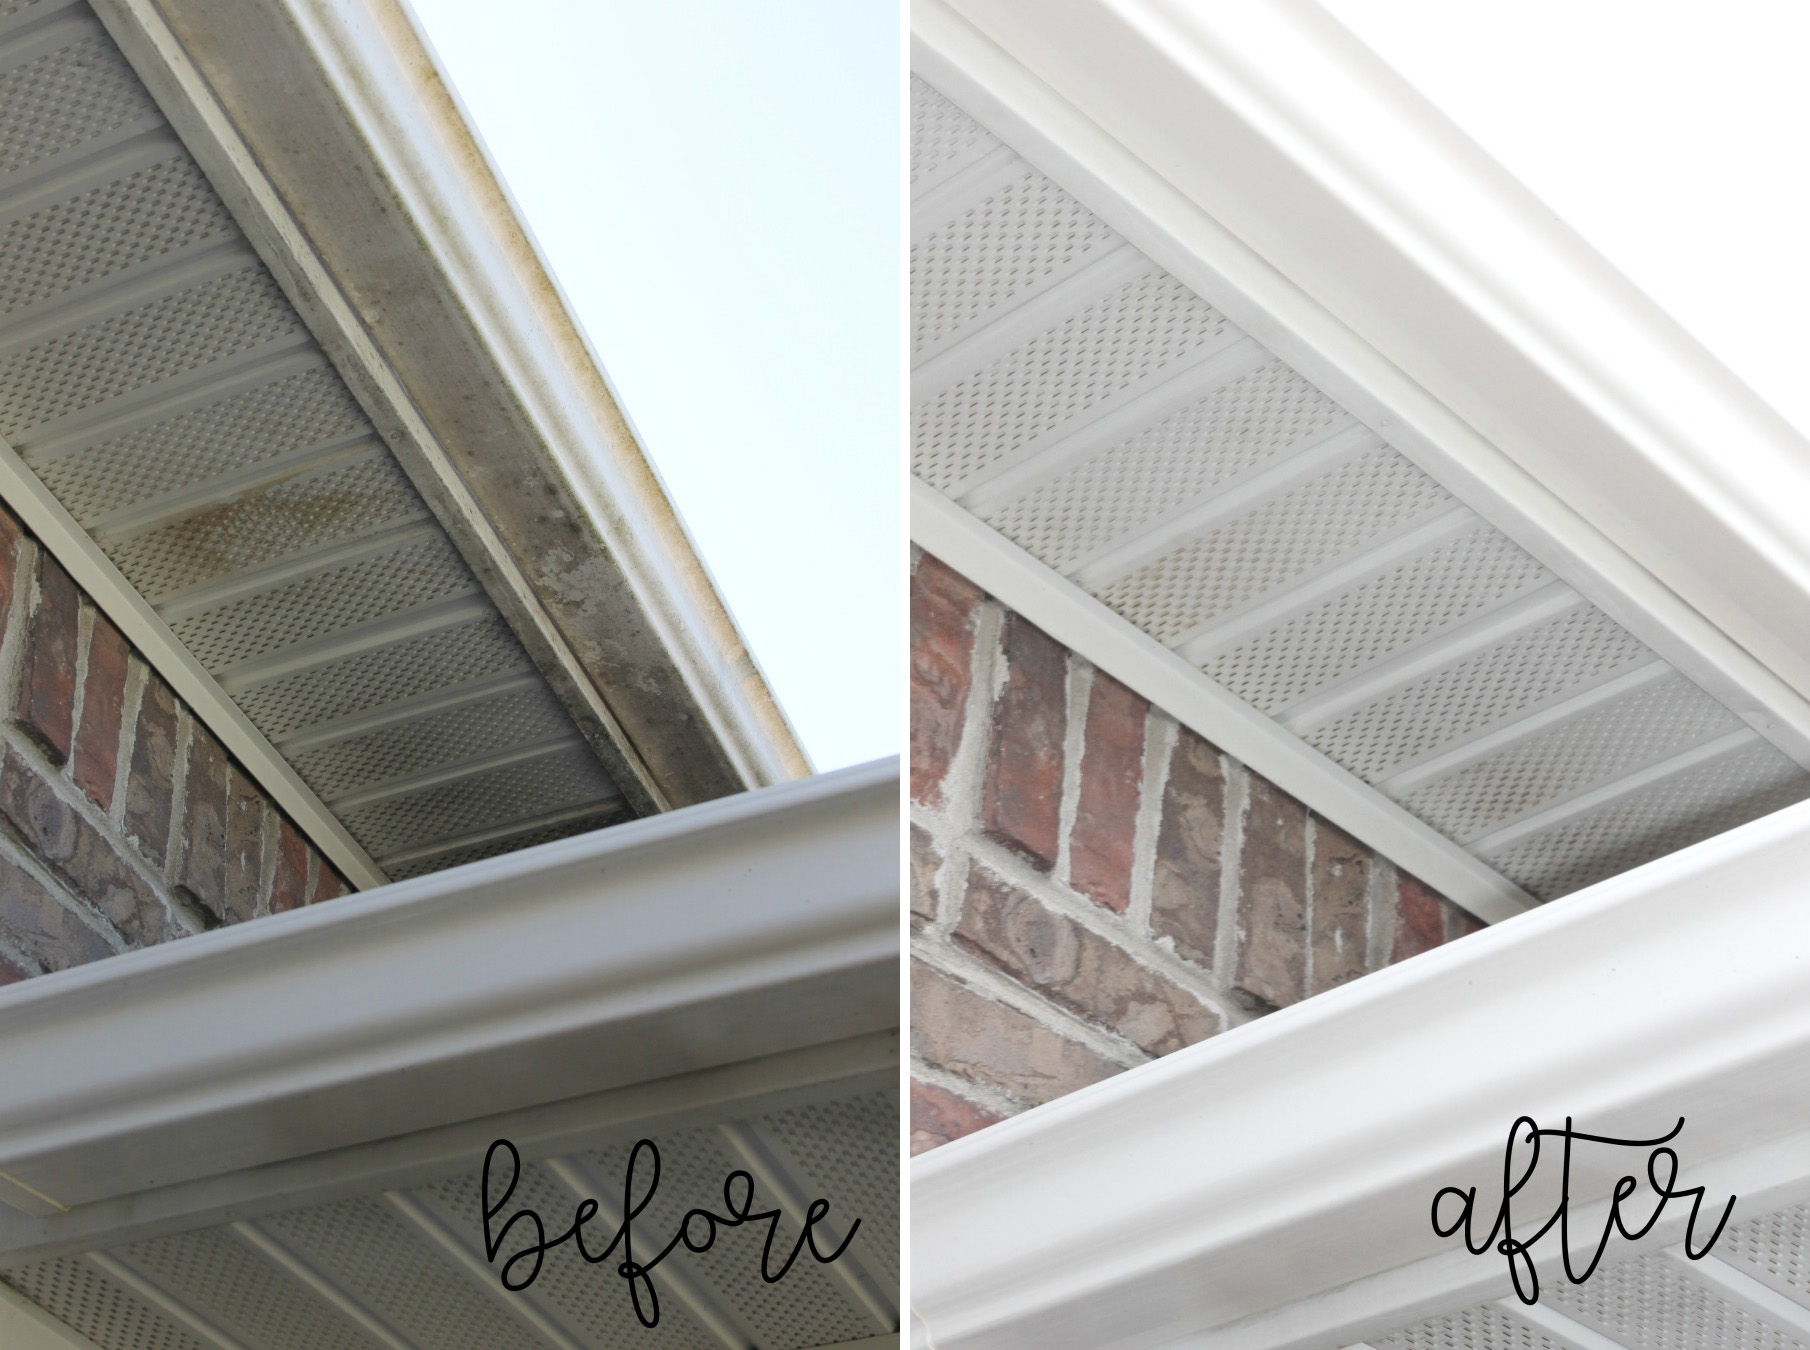 Curb Appeal Ideas - Clean Eaves, Gutters and Overhangs